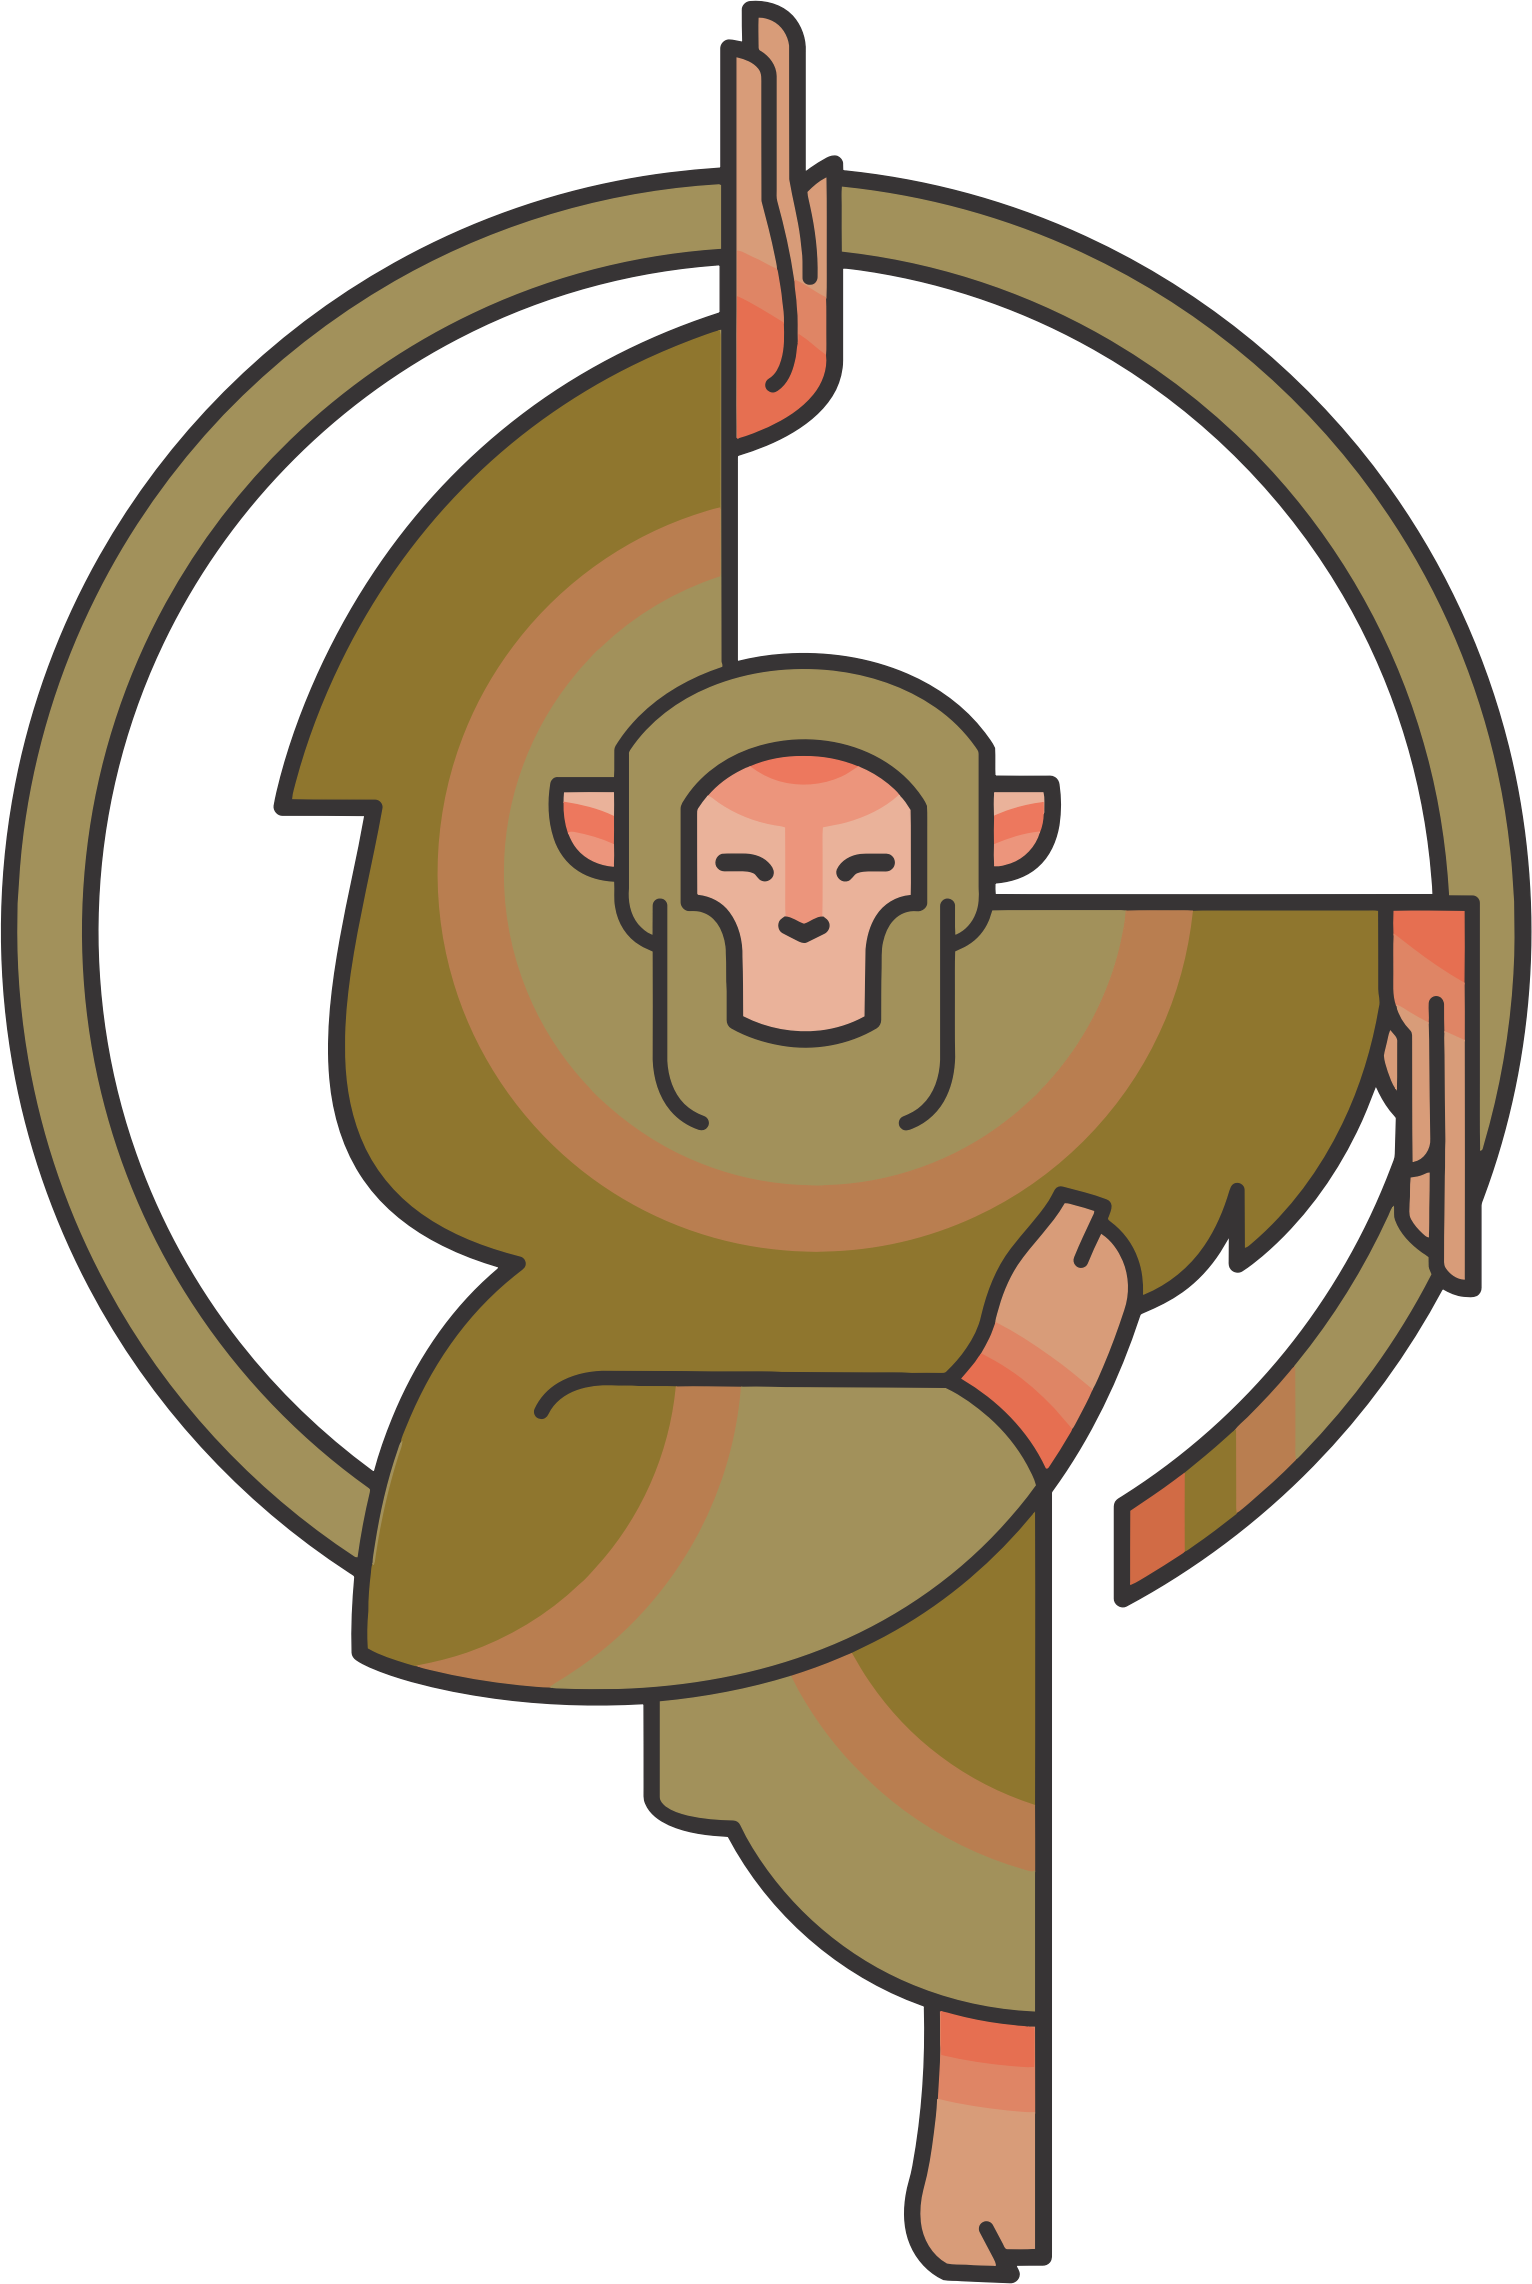 Stylized Cartoon Monkey by GDJ